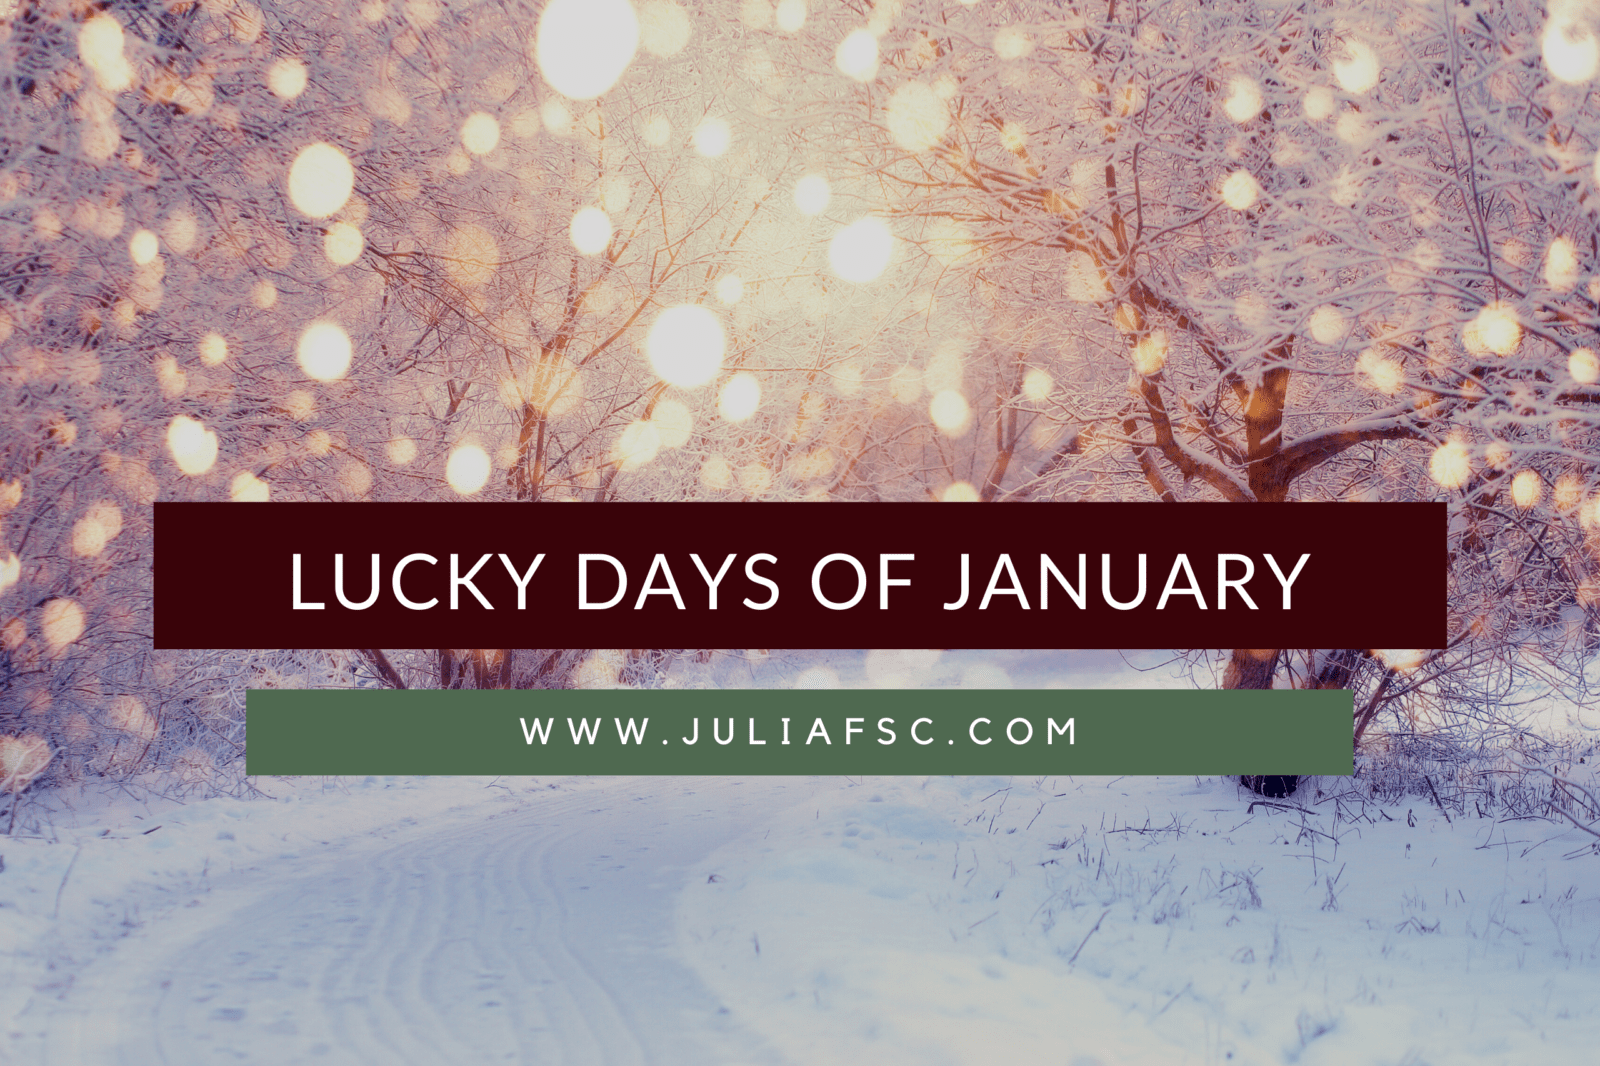 Lucky days of January